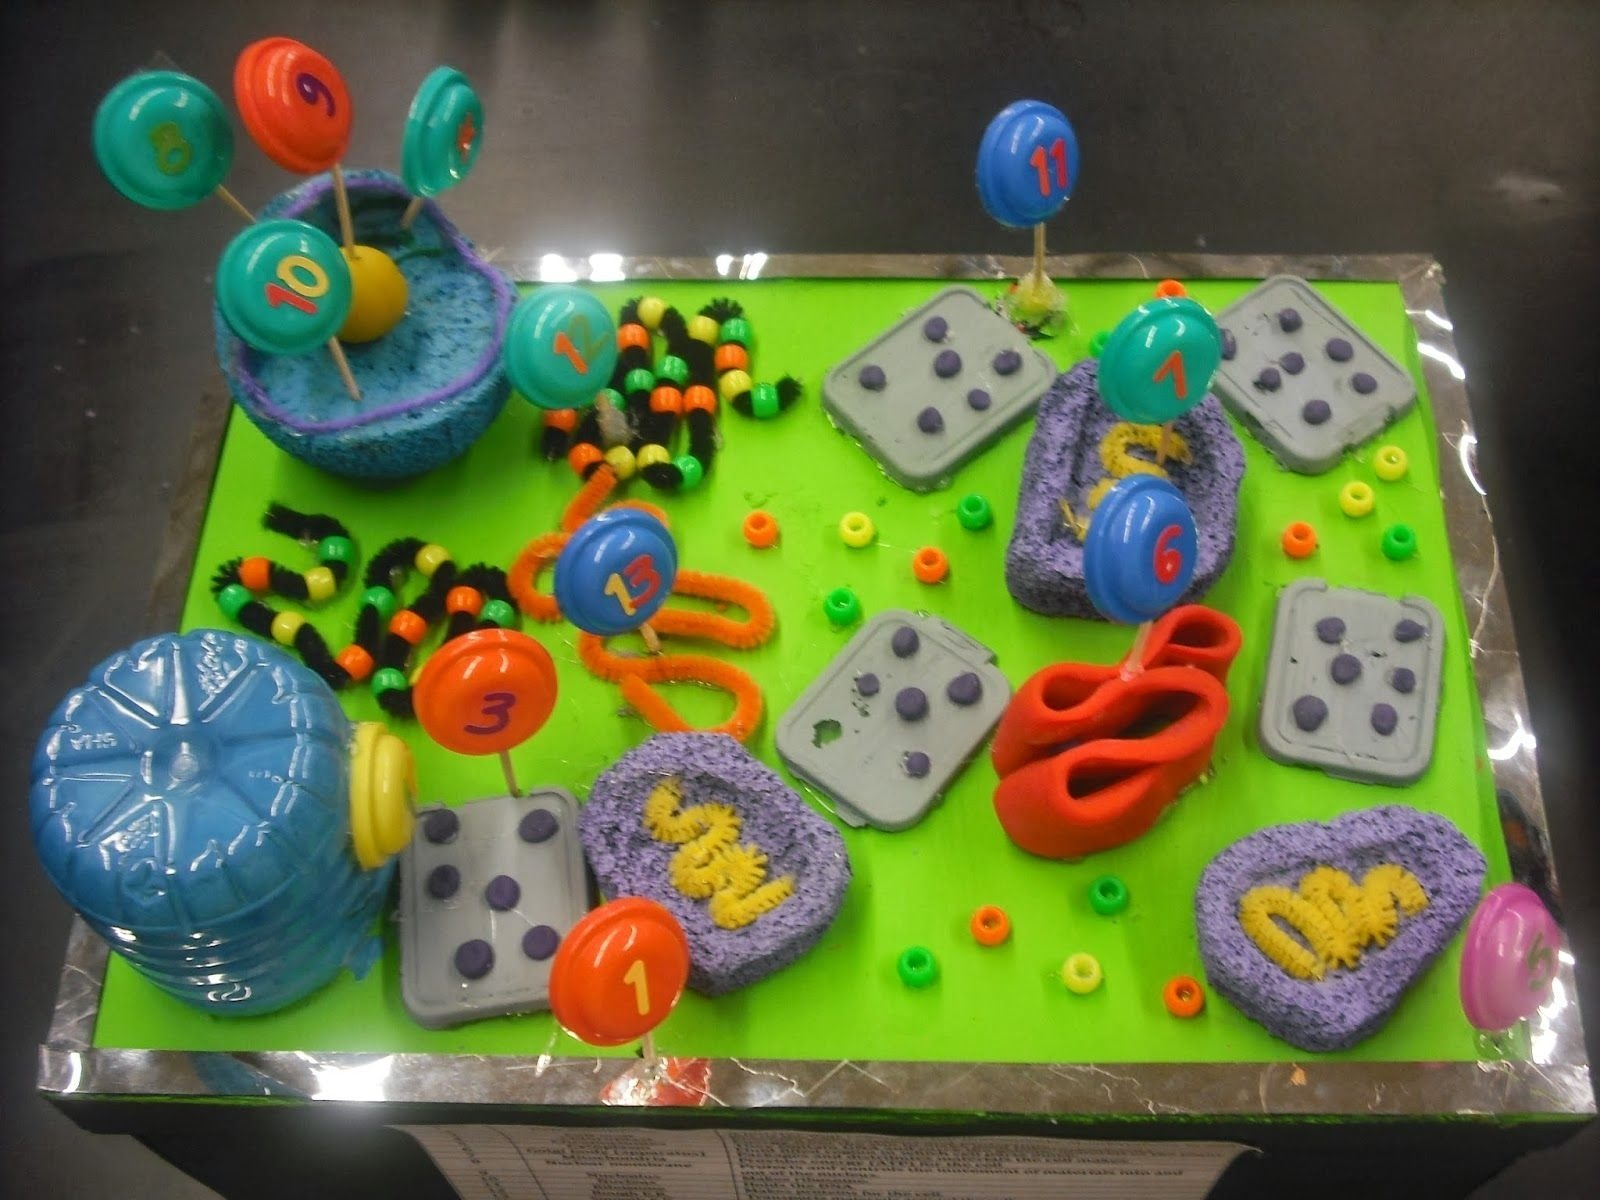 10 Stylish Plant Cell 3D Model Ideas animal and plant cell modelsmr lalatas 7th 8th grade students 1 2021